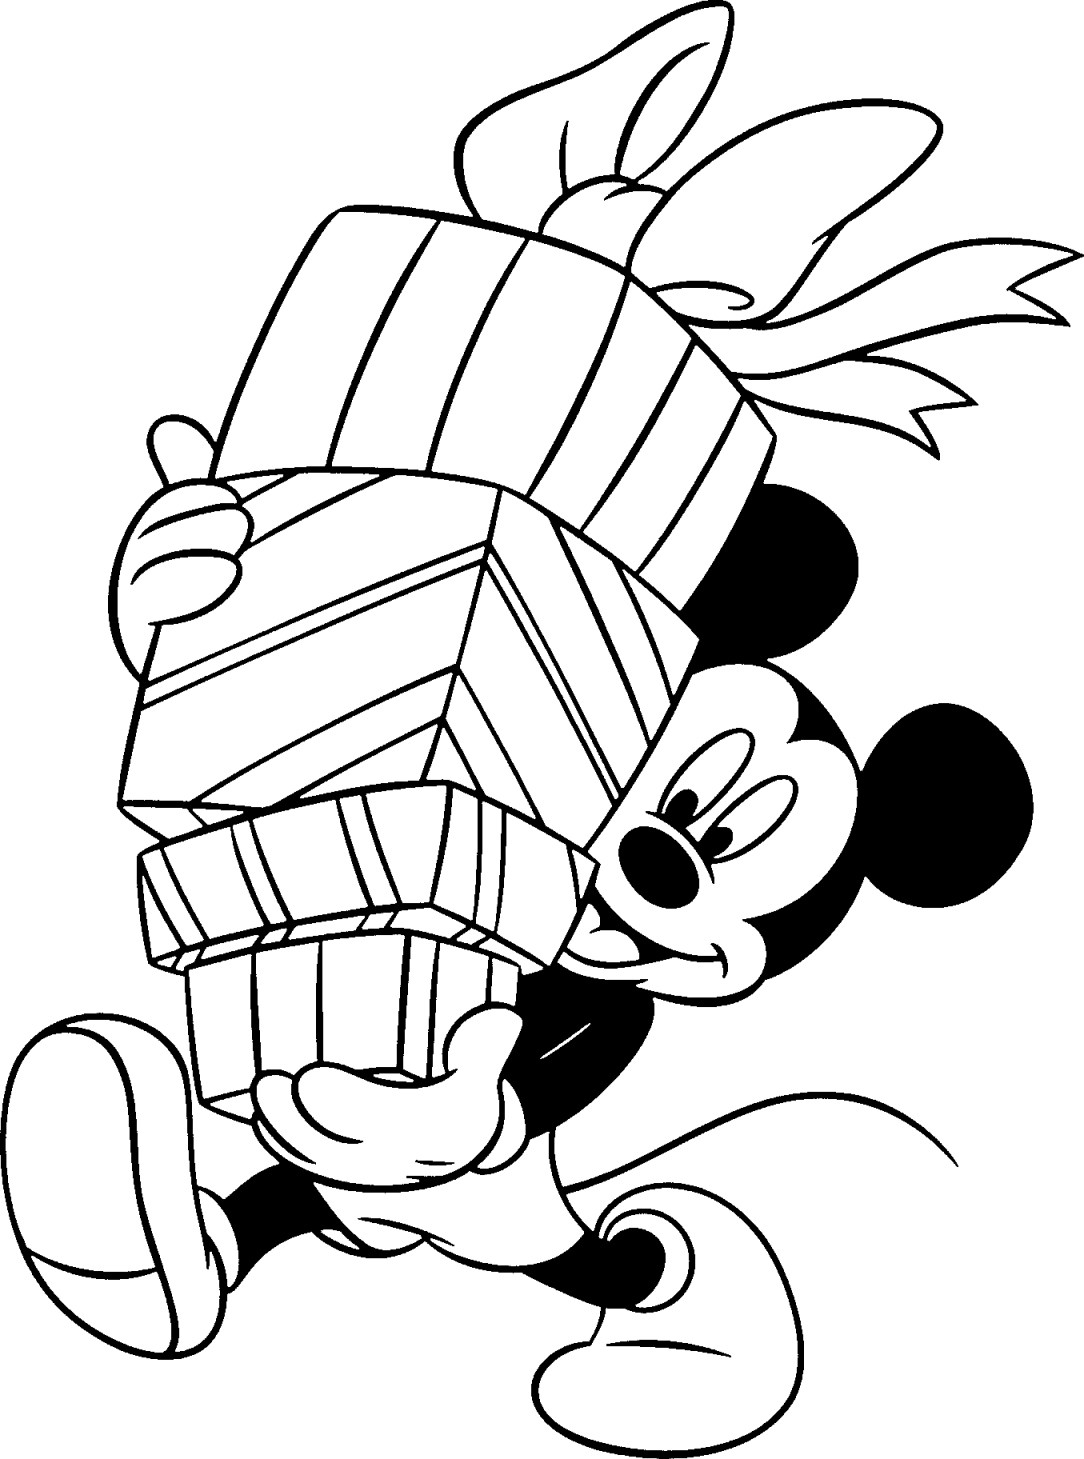 christmas coloring pages for preschoolers free disney christmas printable coloring pages for kids coloring for preschoolers pages christmas